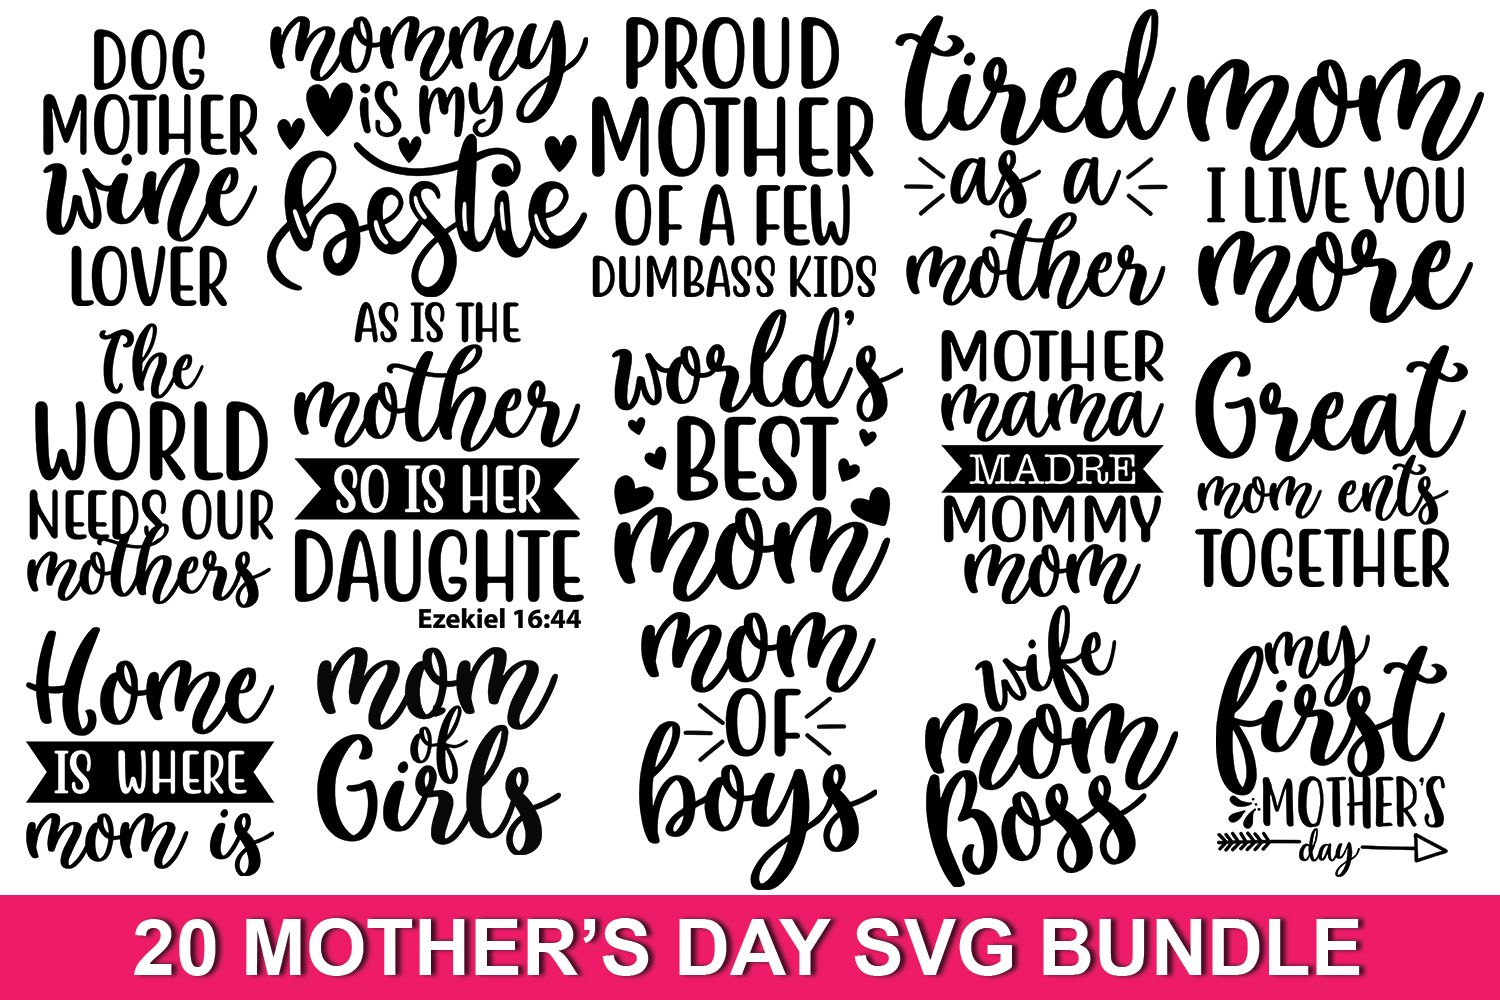 20 Mother's Day Quotes SVG Bundle (Graphic) by svgbundle